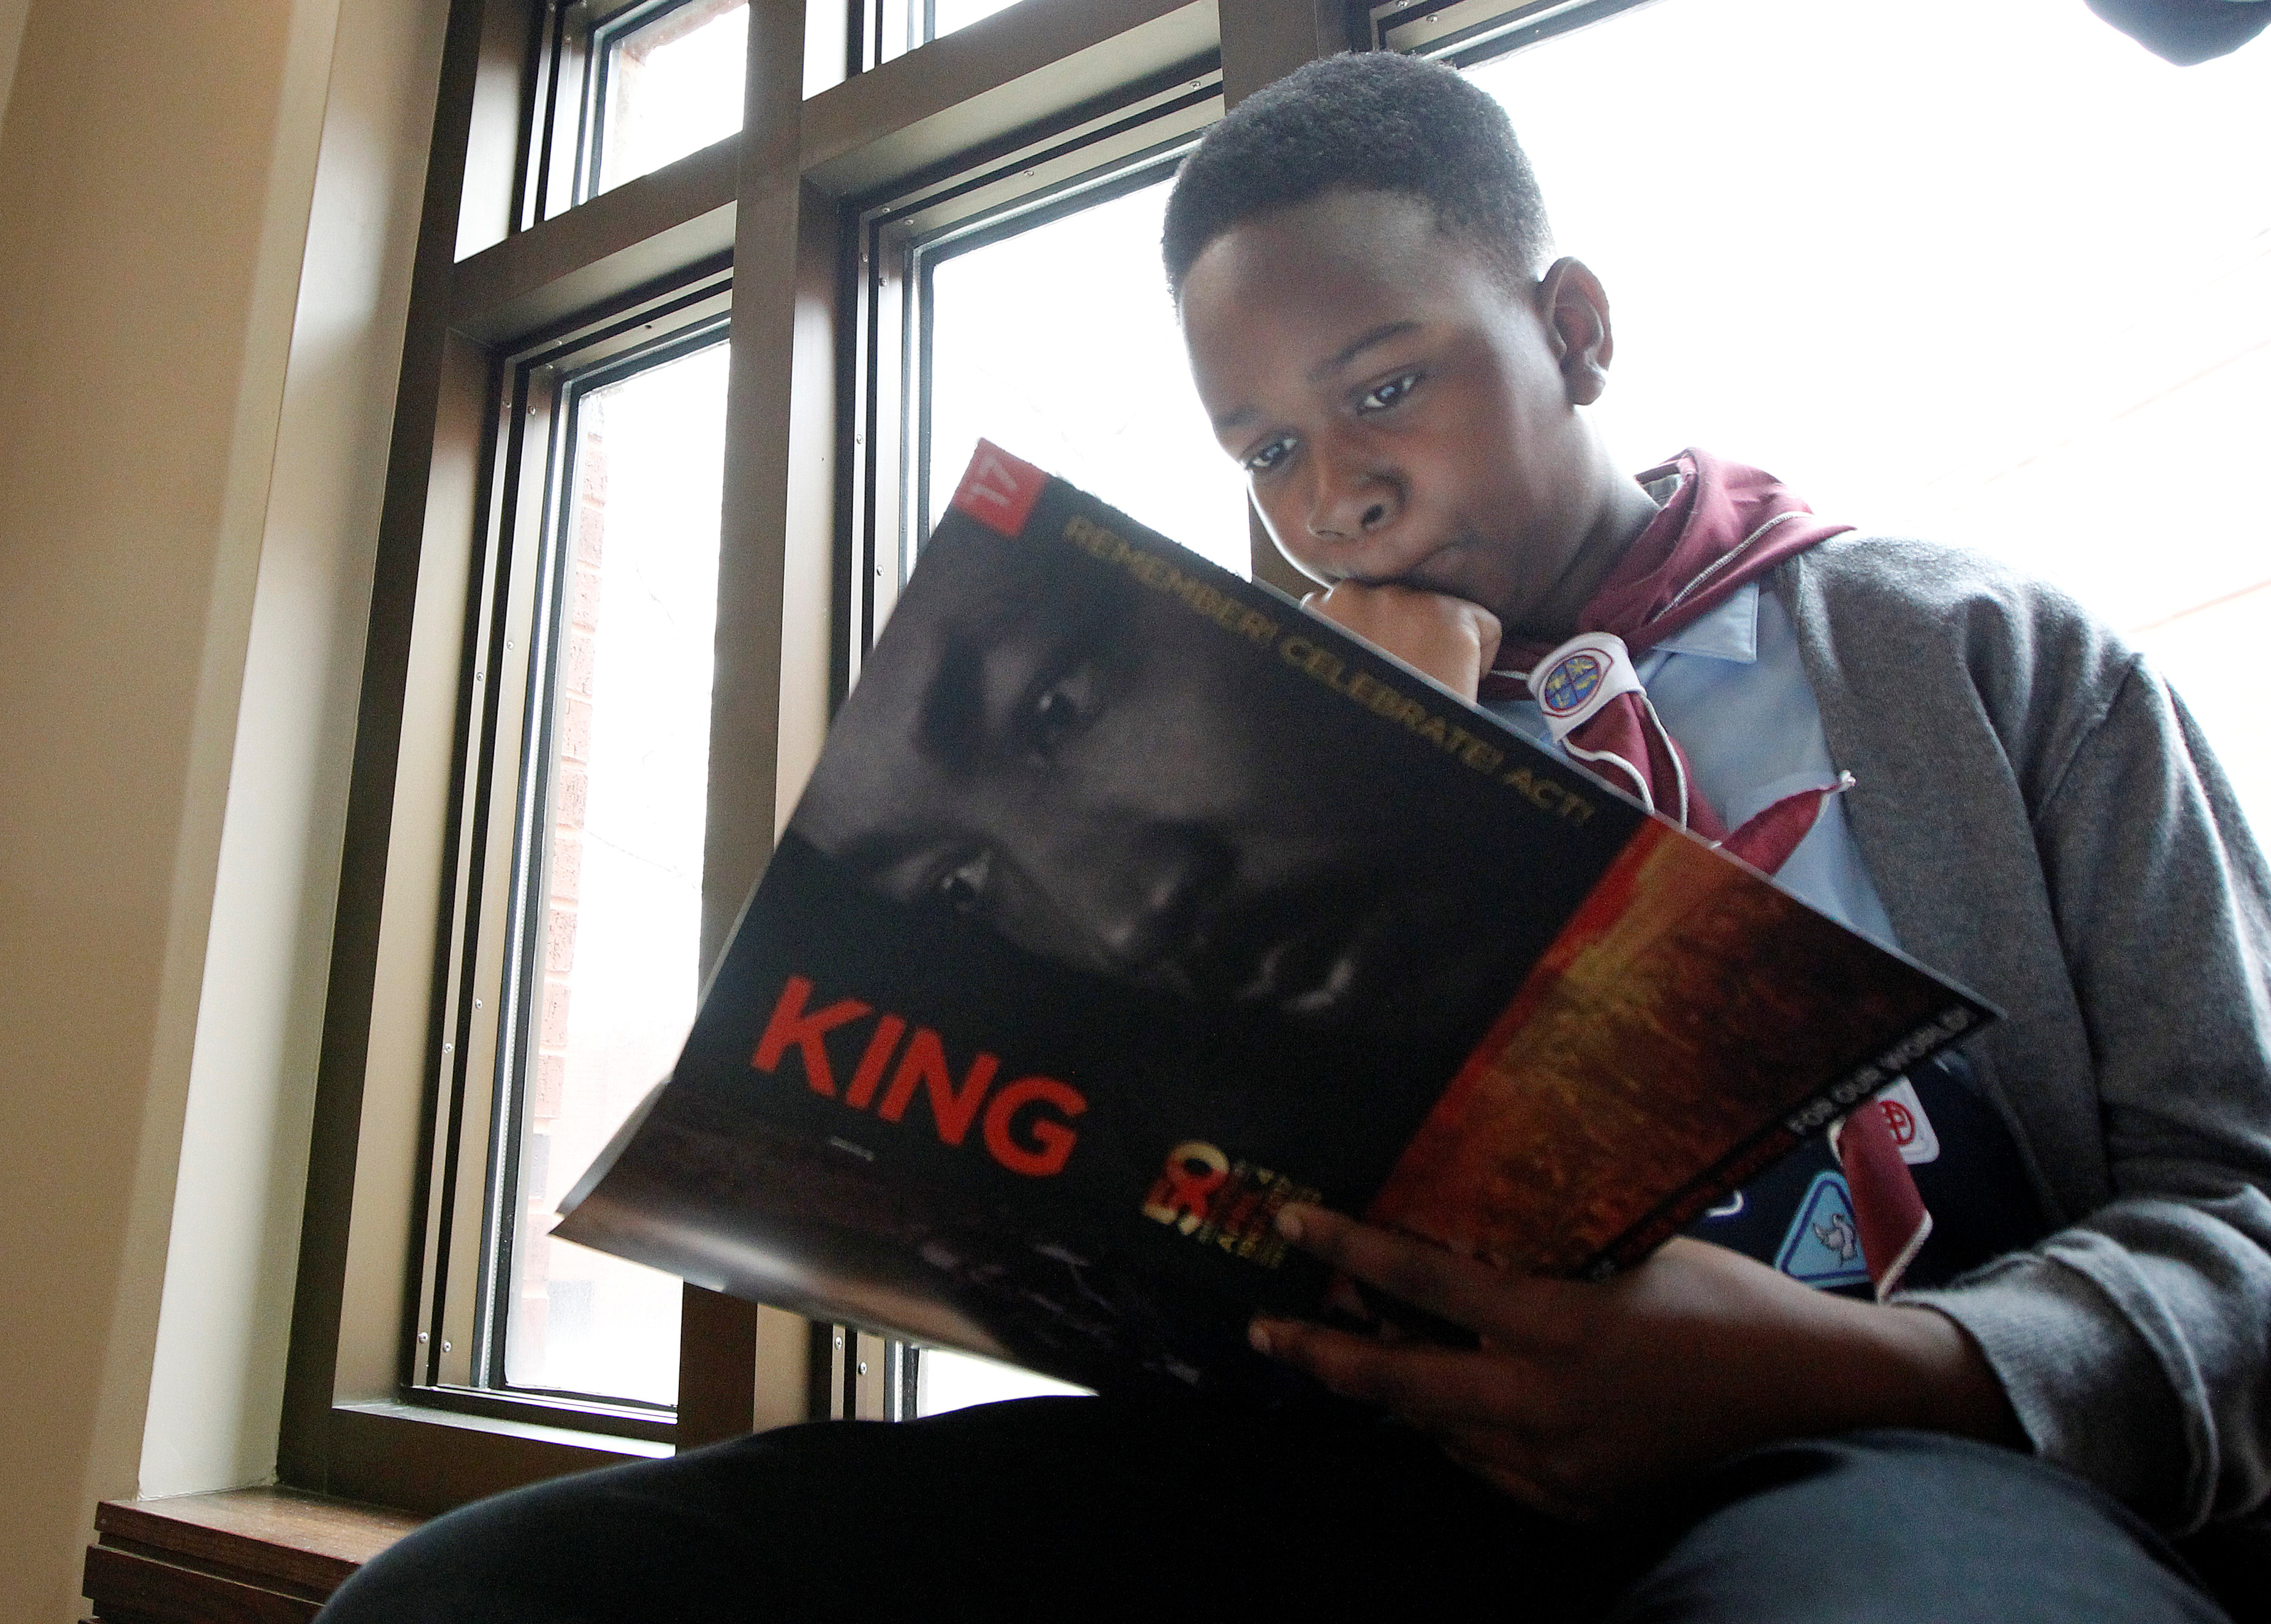 Nine-year old Micah Brown looks over the King program as he sits along a window during the Martin Luther King Jr. Commemorative Service at Ebenezer Baptist Church in Atlanta, Georgia, U.S. January 16, 2017. REUTERS/Tami Chappell - RC1EB13B3AB0